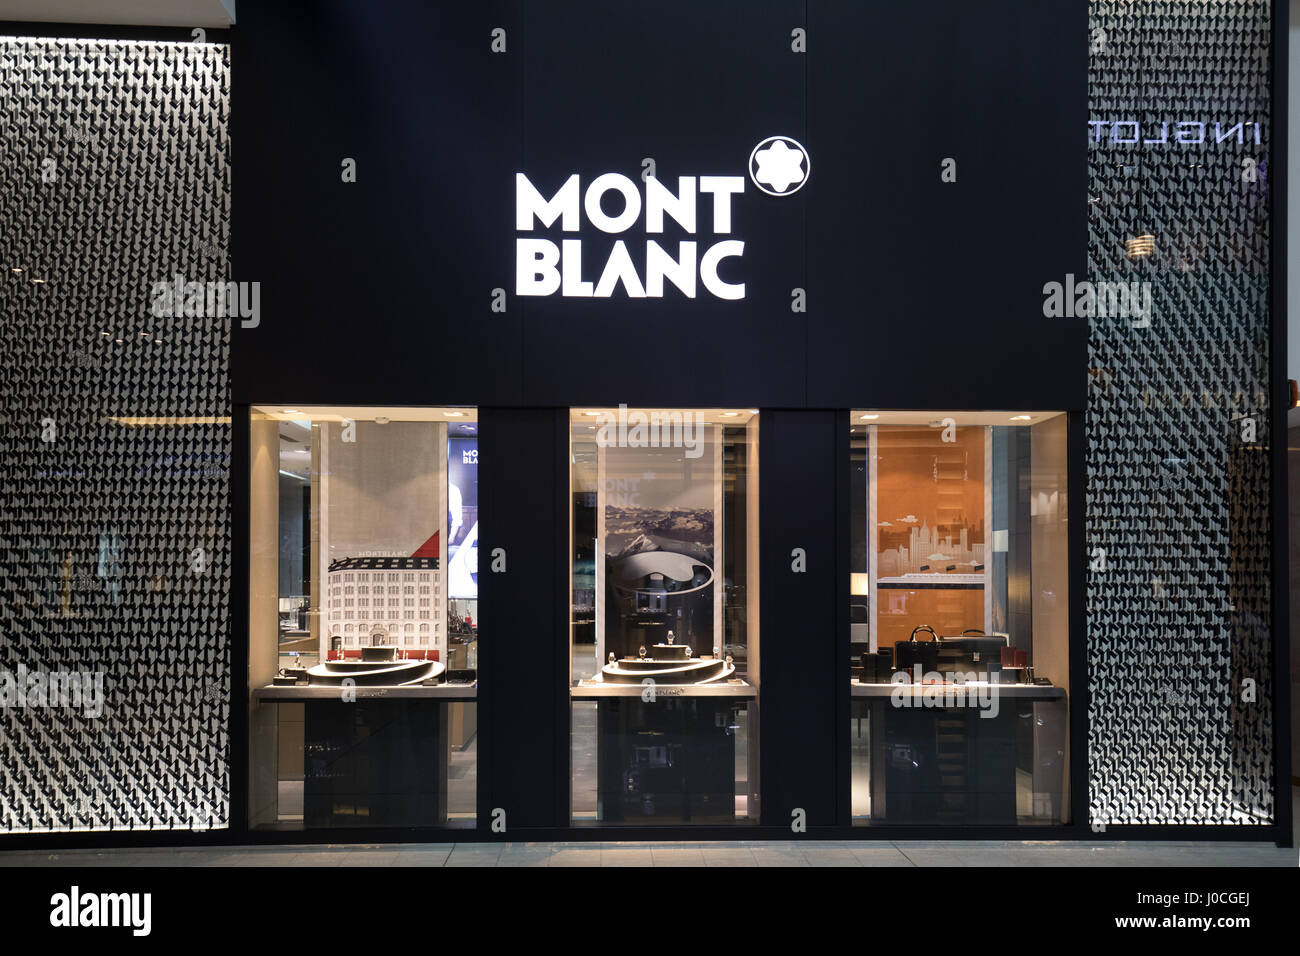 the mont blanc store in dubai mall stock photo 137959322. Black Bedroom Furniture Sets. Home Design Ideas